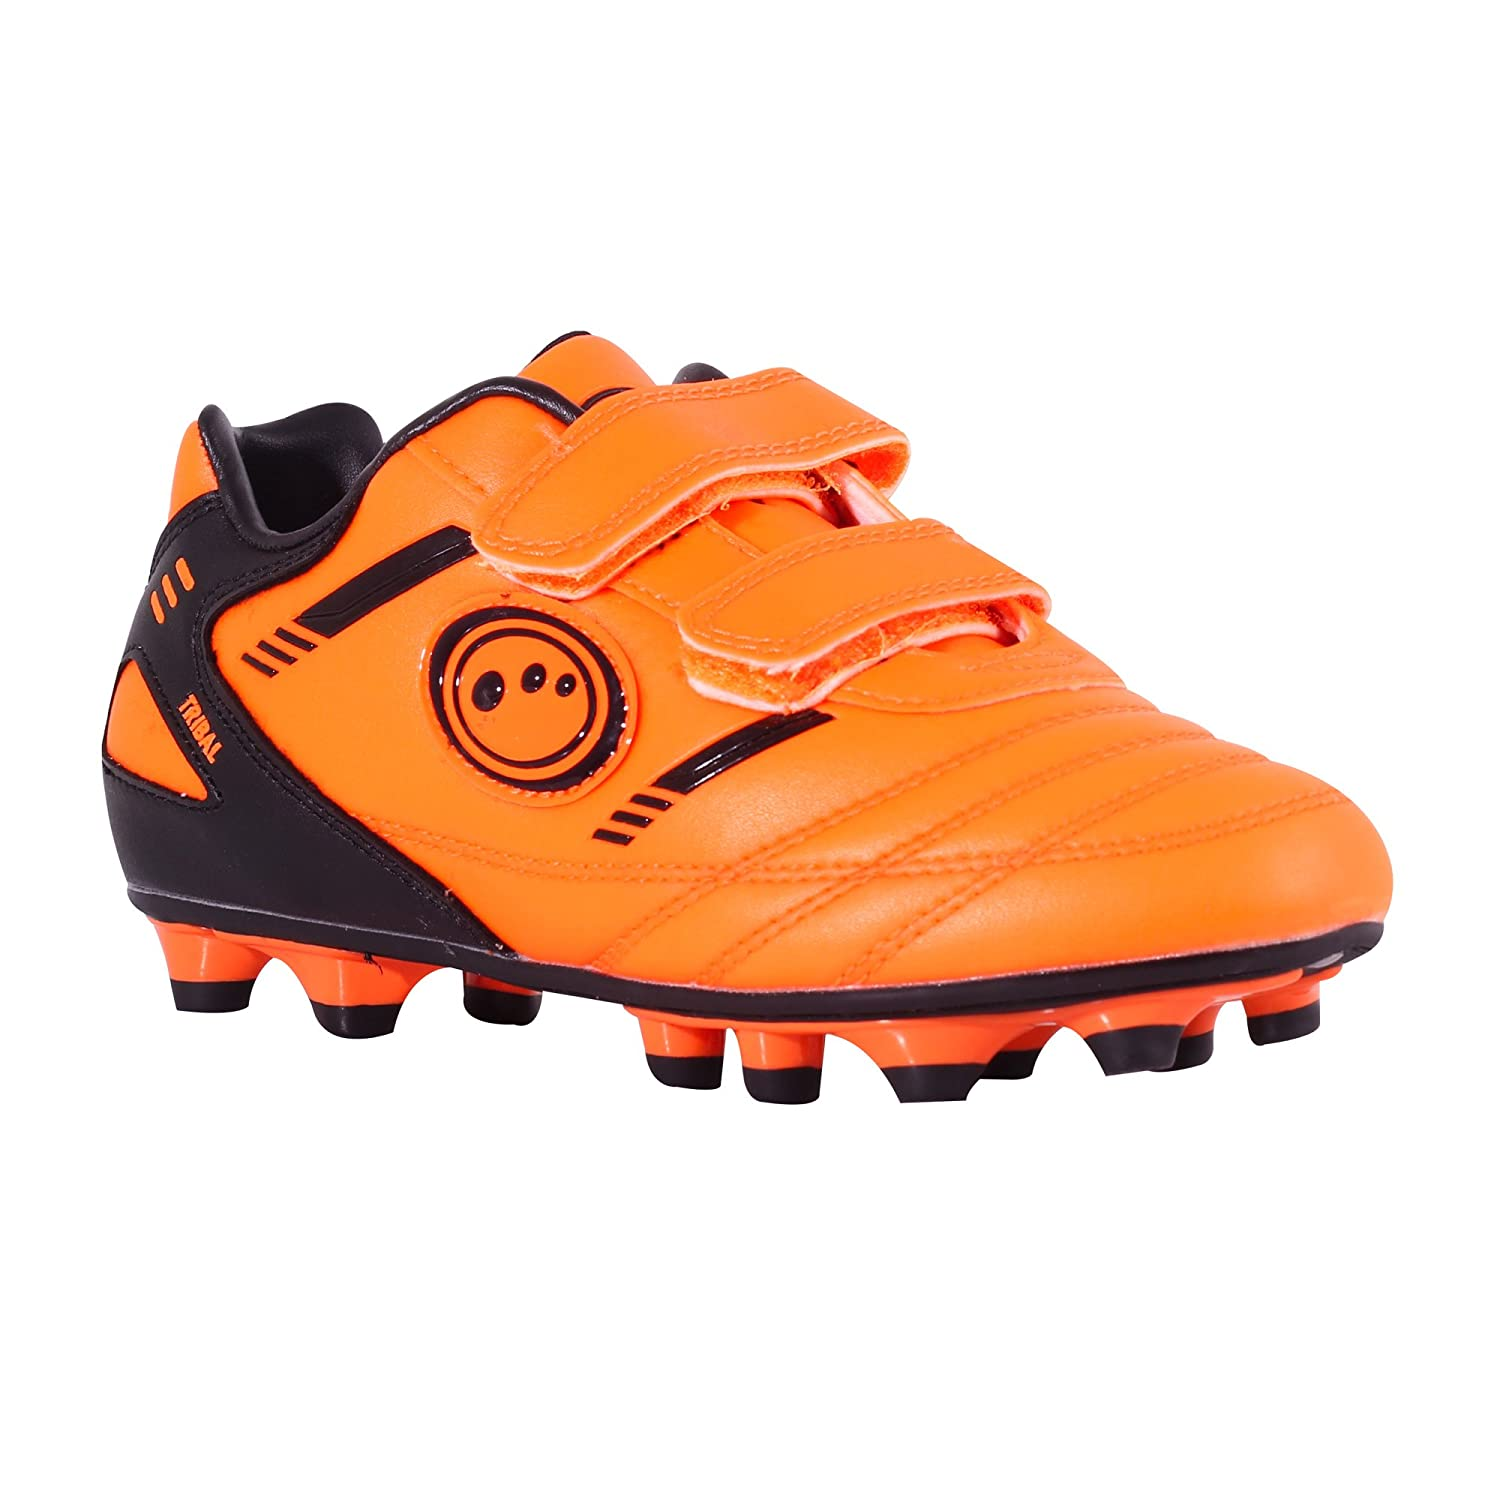 Optimum Tribal - Velcro Moulded Stud, Chaussures de Football Garçons